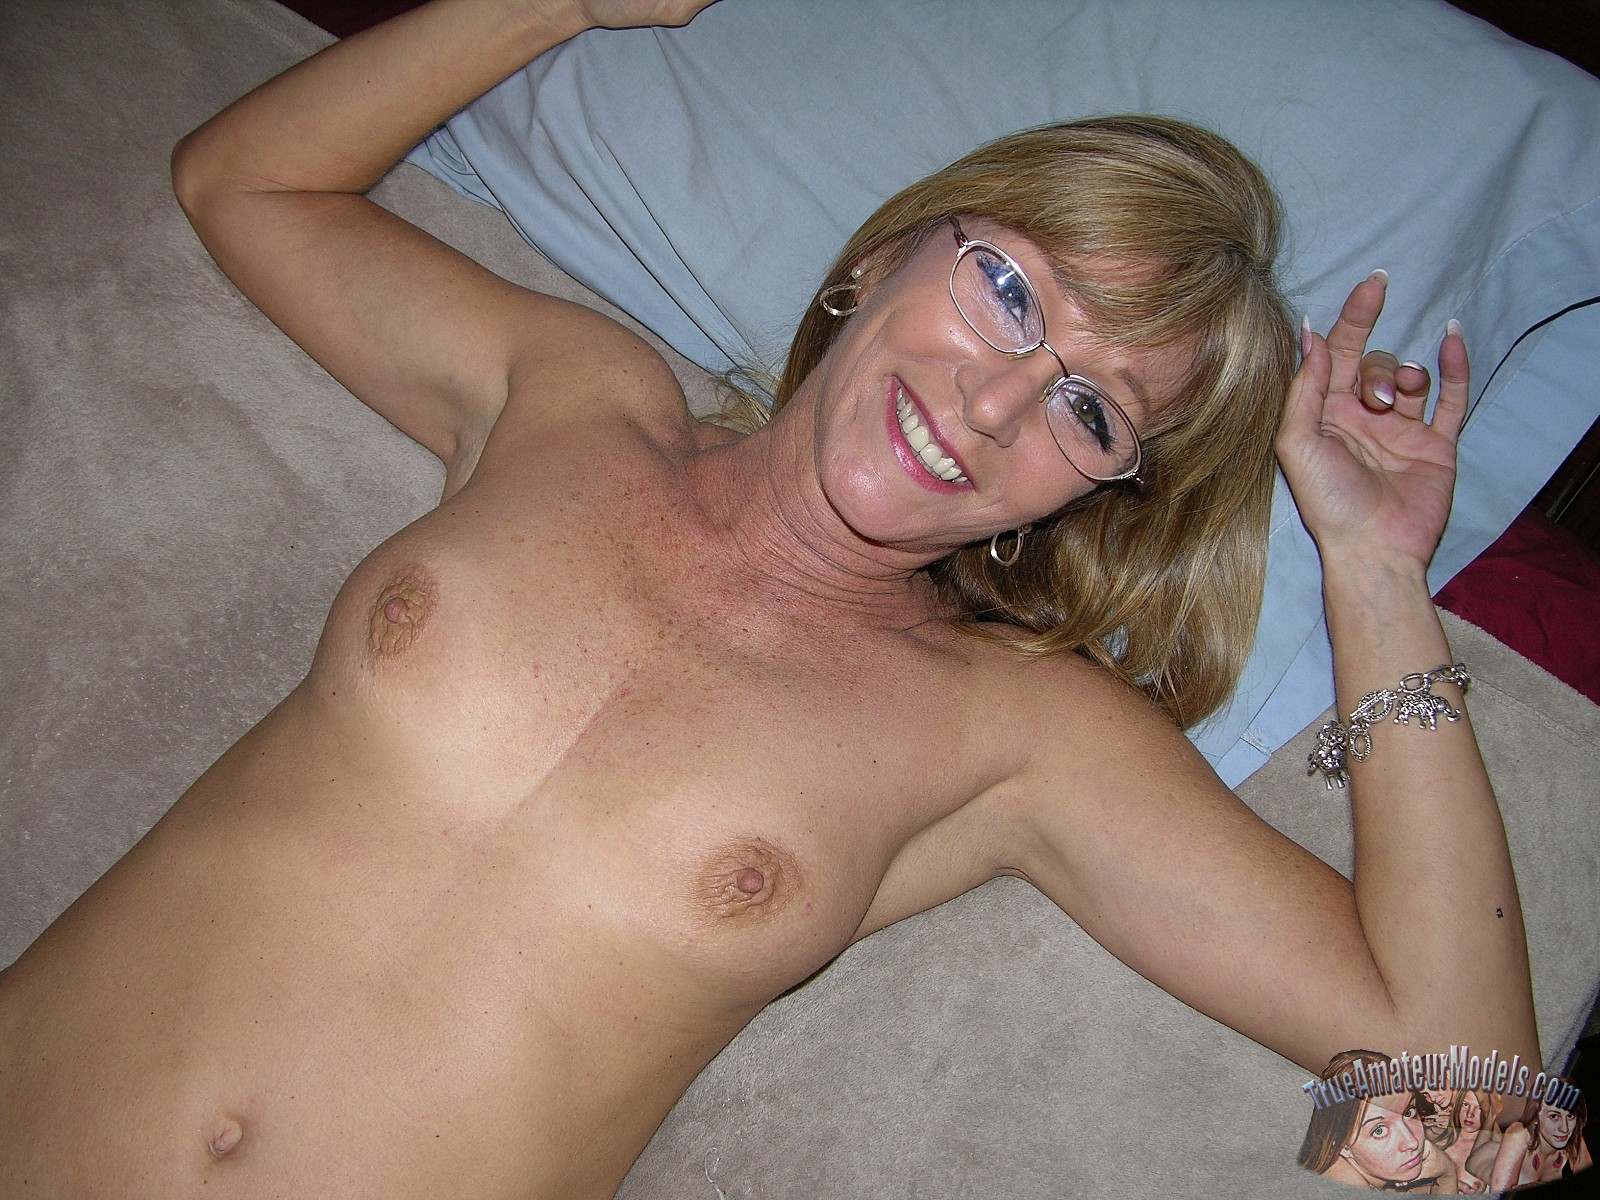 Could not nude amateur cougar milf amusing idea